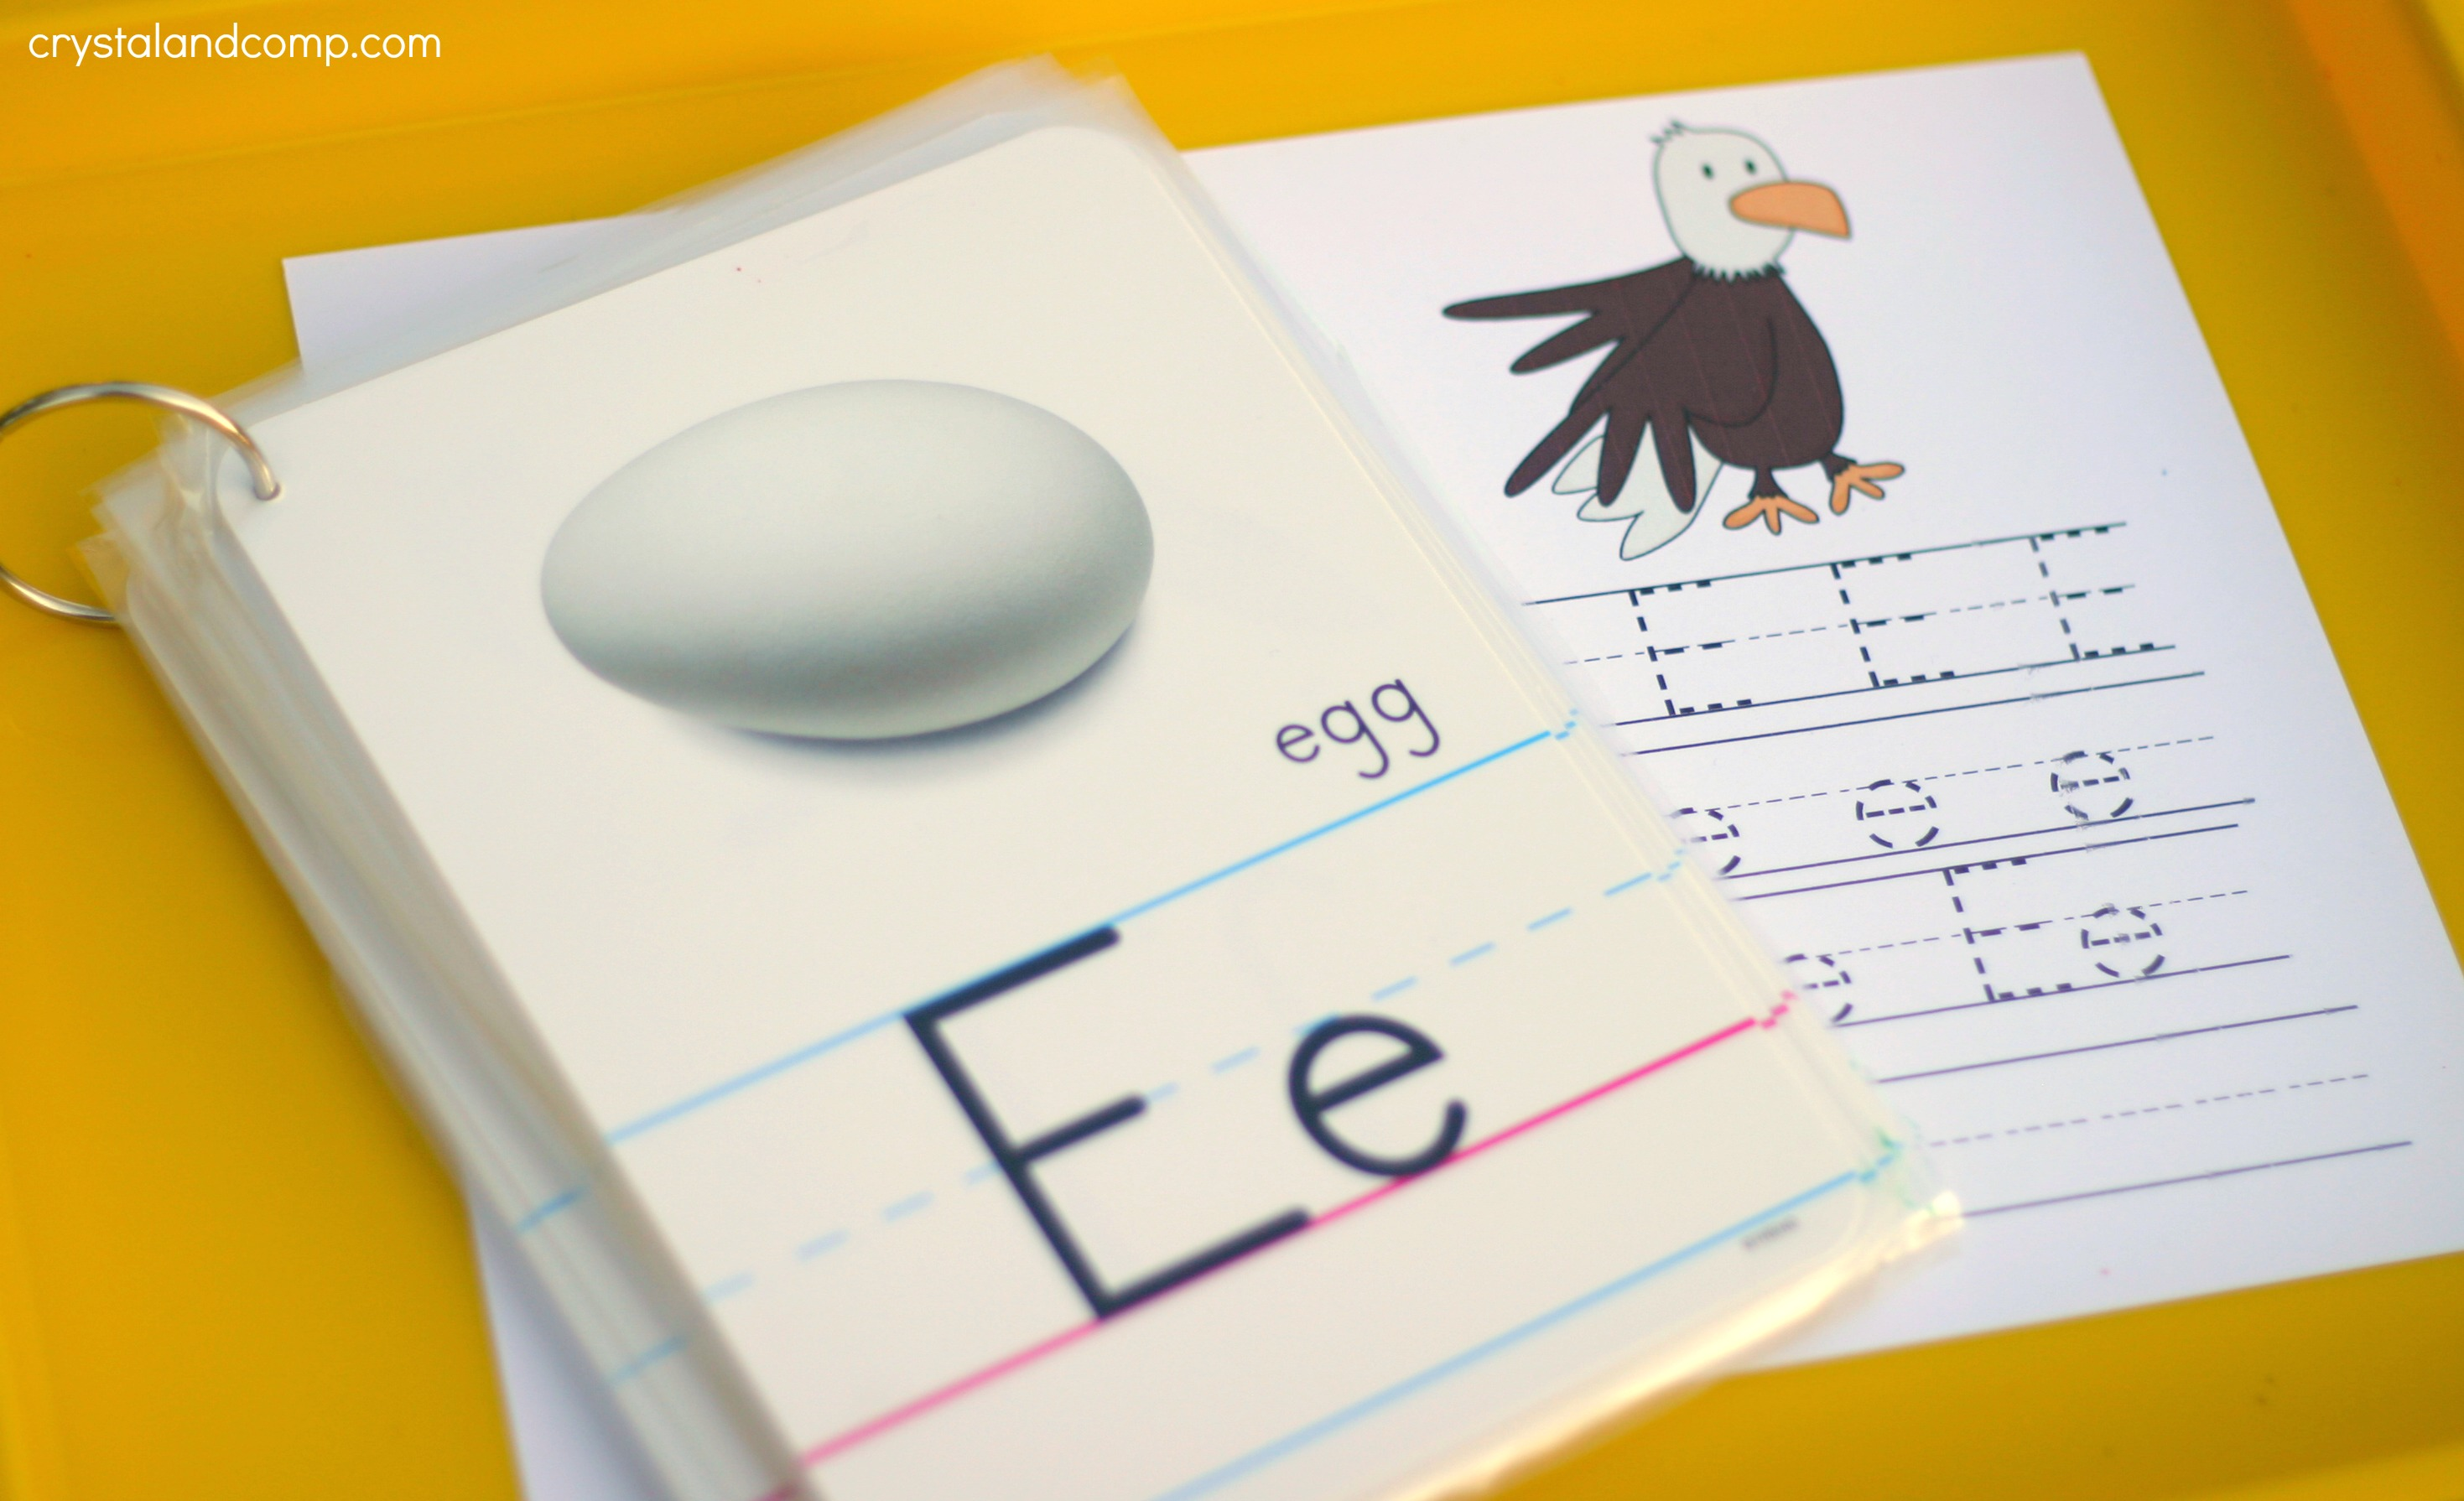 handwriting practice for kids e is for eagle crystalandcomp com